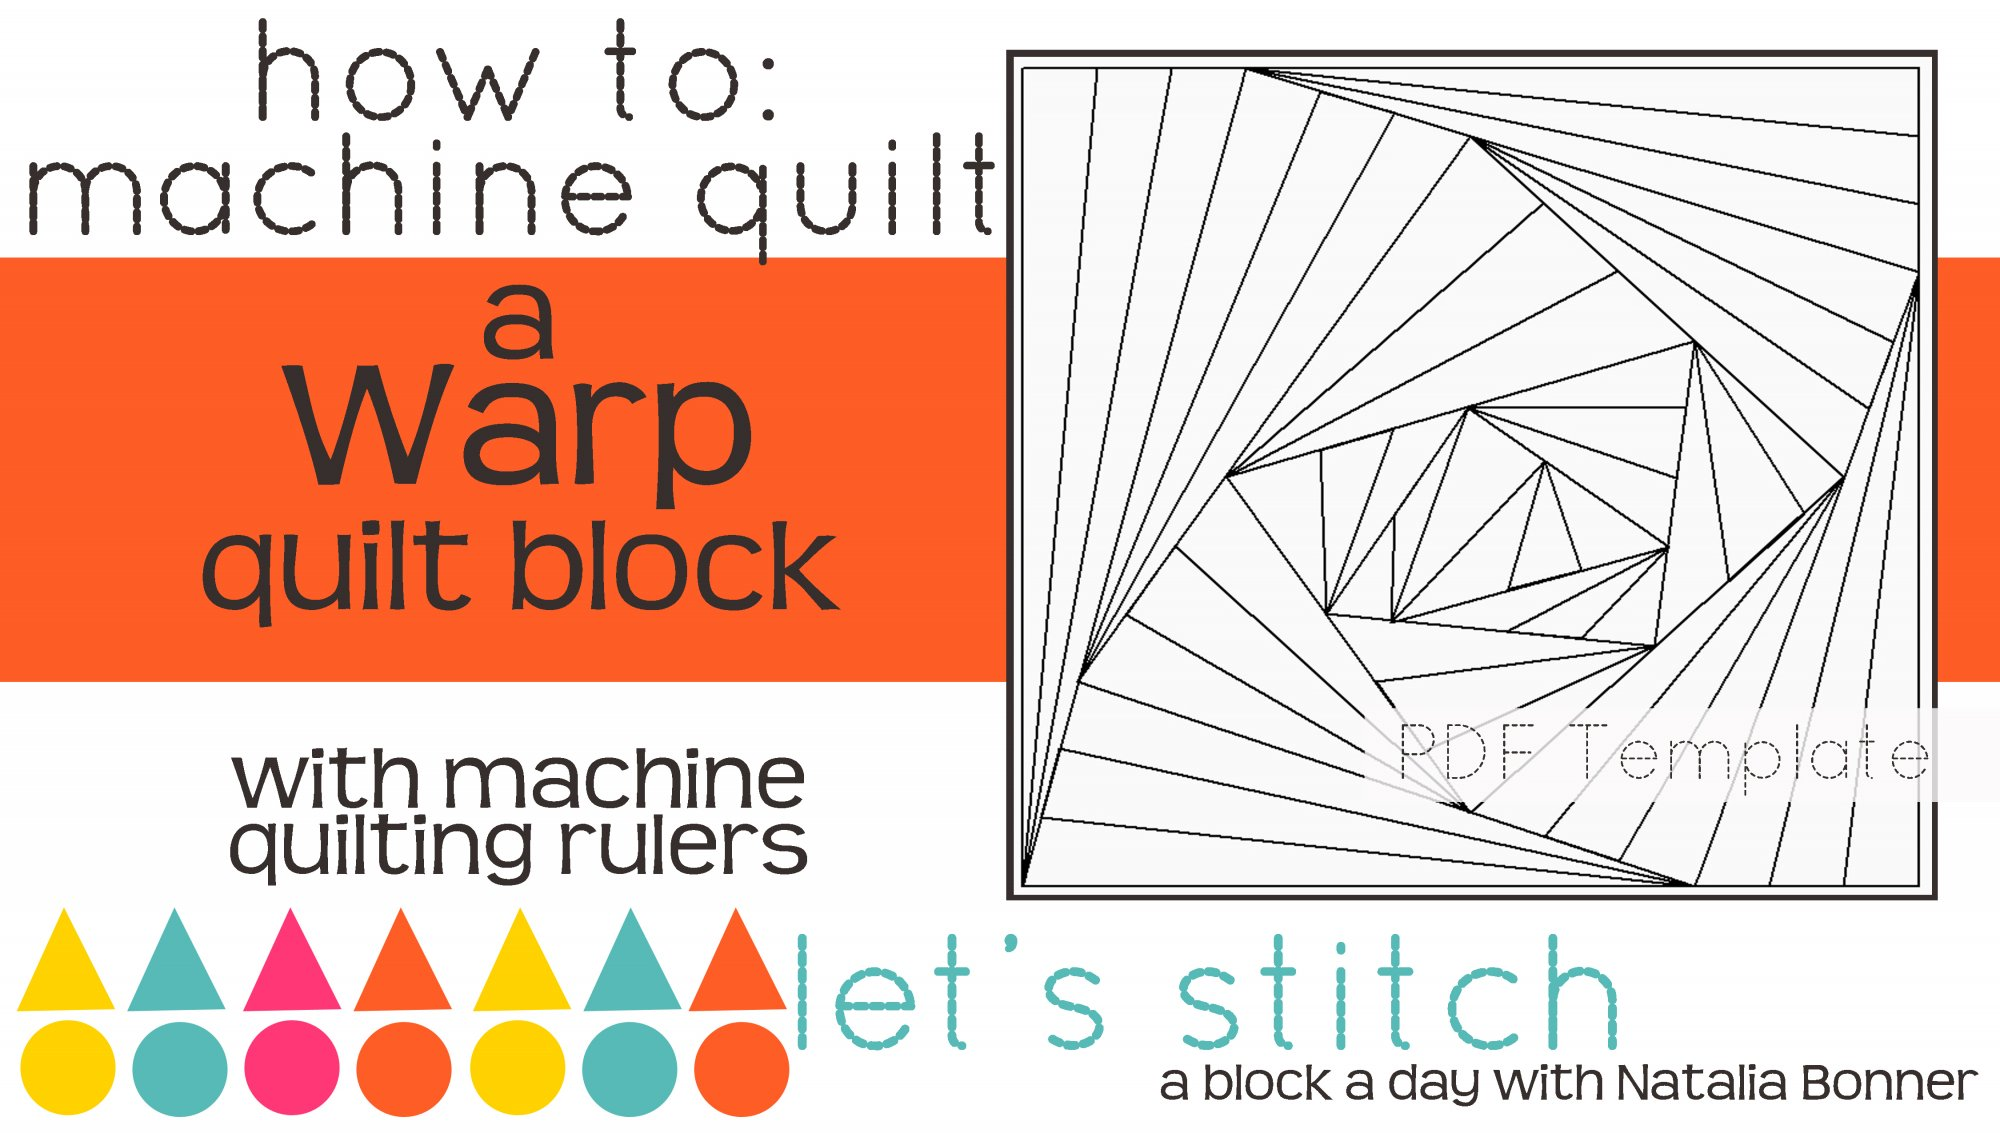 Let's Stitch - A Block a Day With Natalia Bonner - PDF - Warp